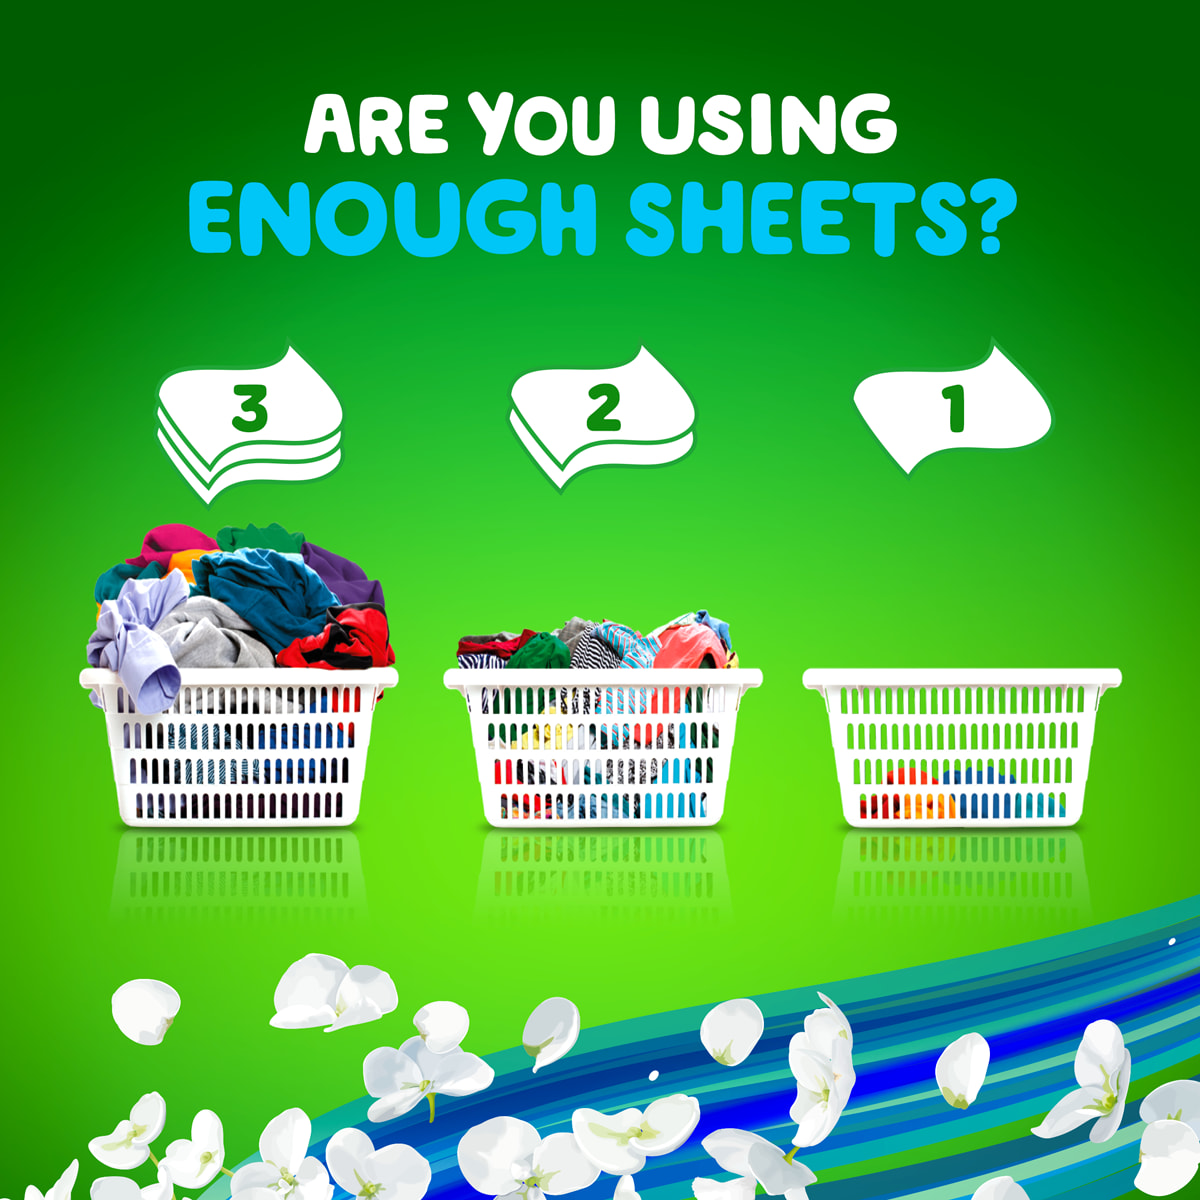 Are you using enough dryer sheets? Usage instructions for Blissful Breeze Dryer Sheets: large basket of fabrics - 3 sheets; average basket of fabrics - 2 sheets; small basket of fabrics - 1 sheet